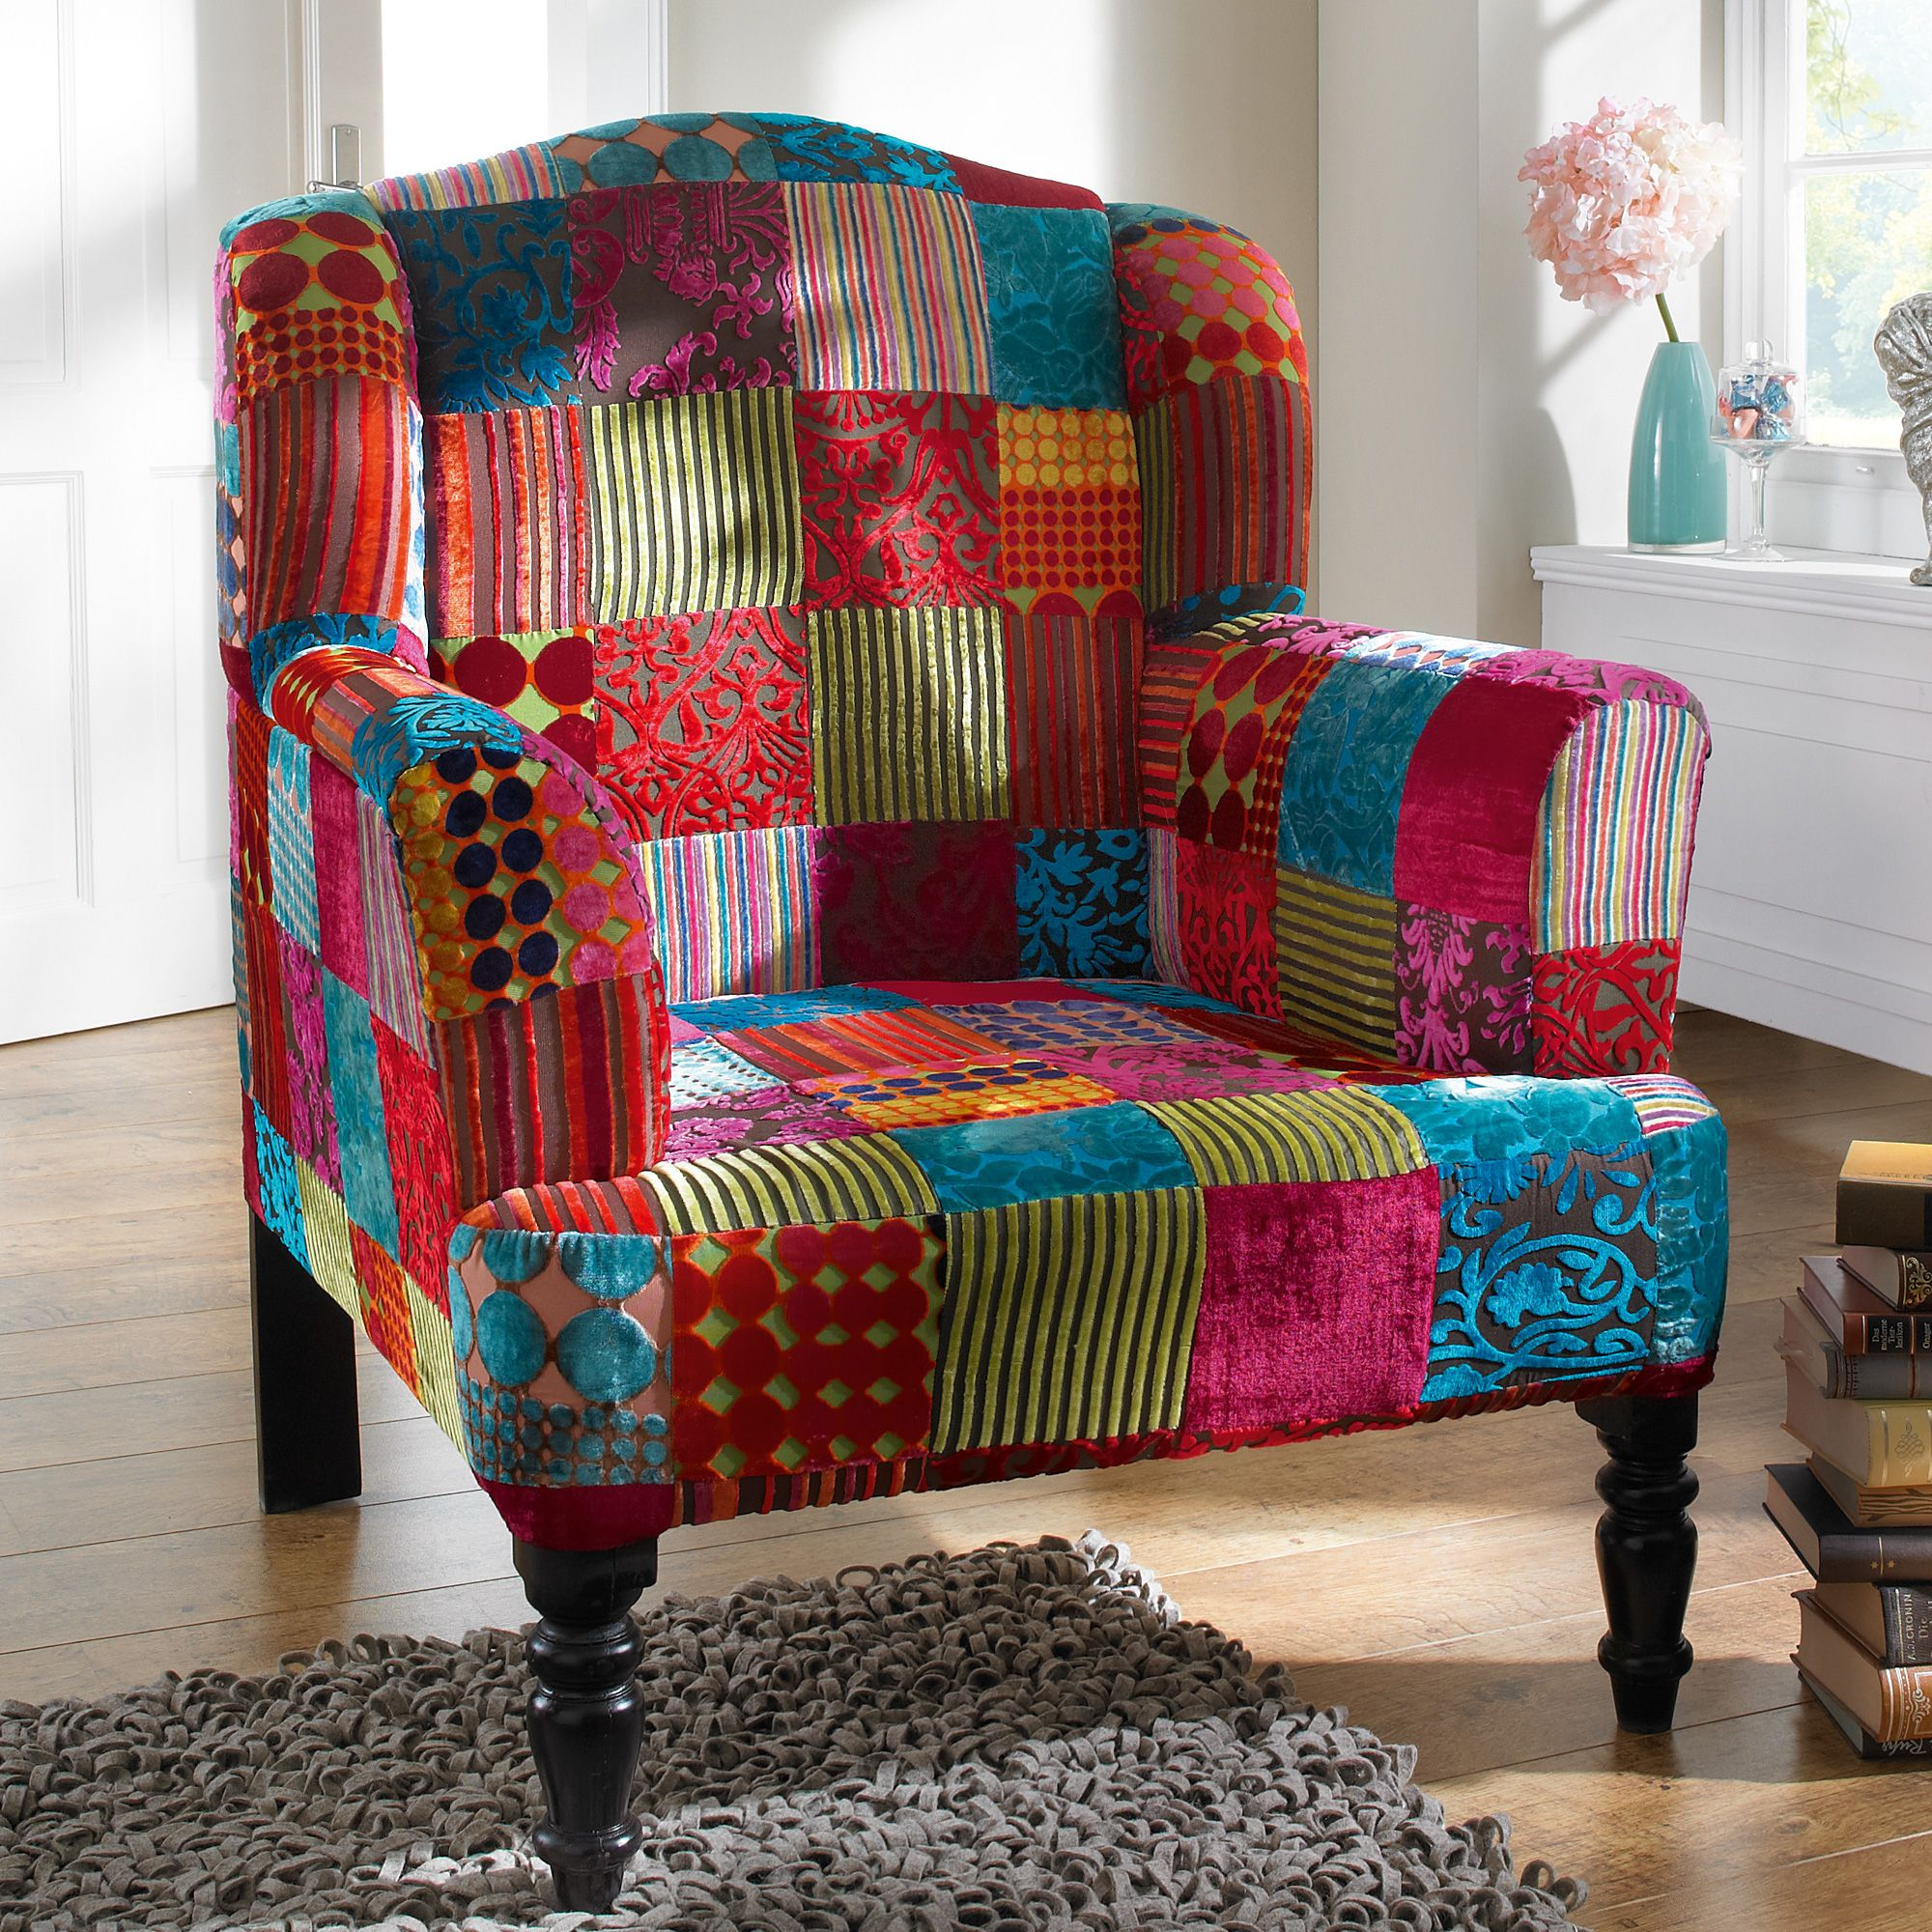 Patchwork Ohrensessel Patchwork Sessel Love This Furniture Ideas Pinterest